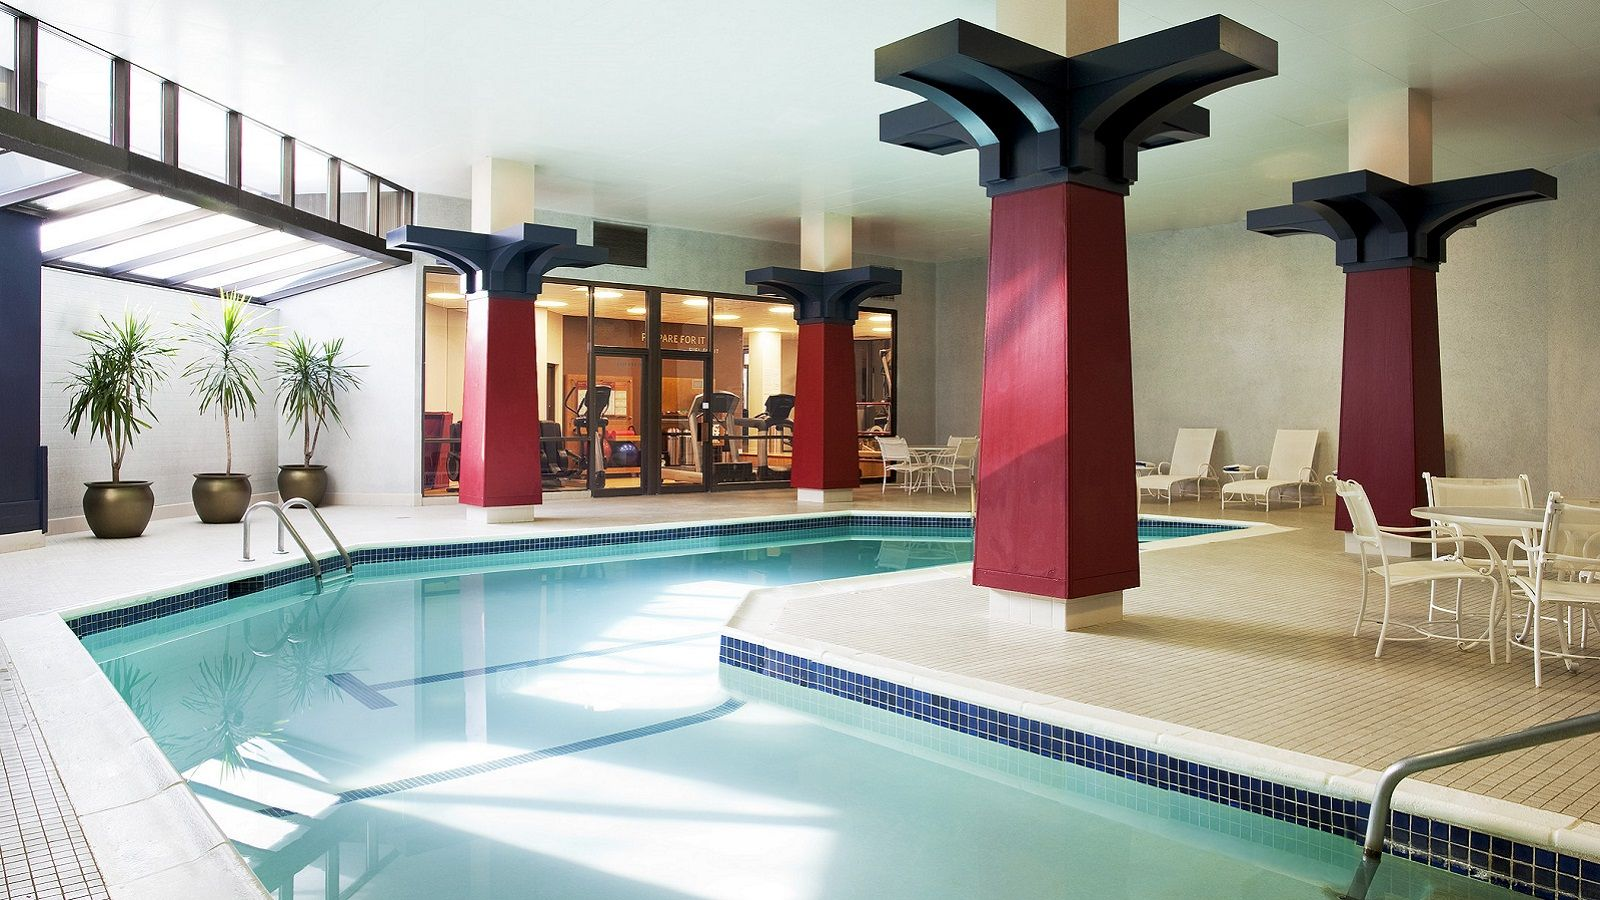 Hotel Amenities - Indoor Pool